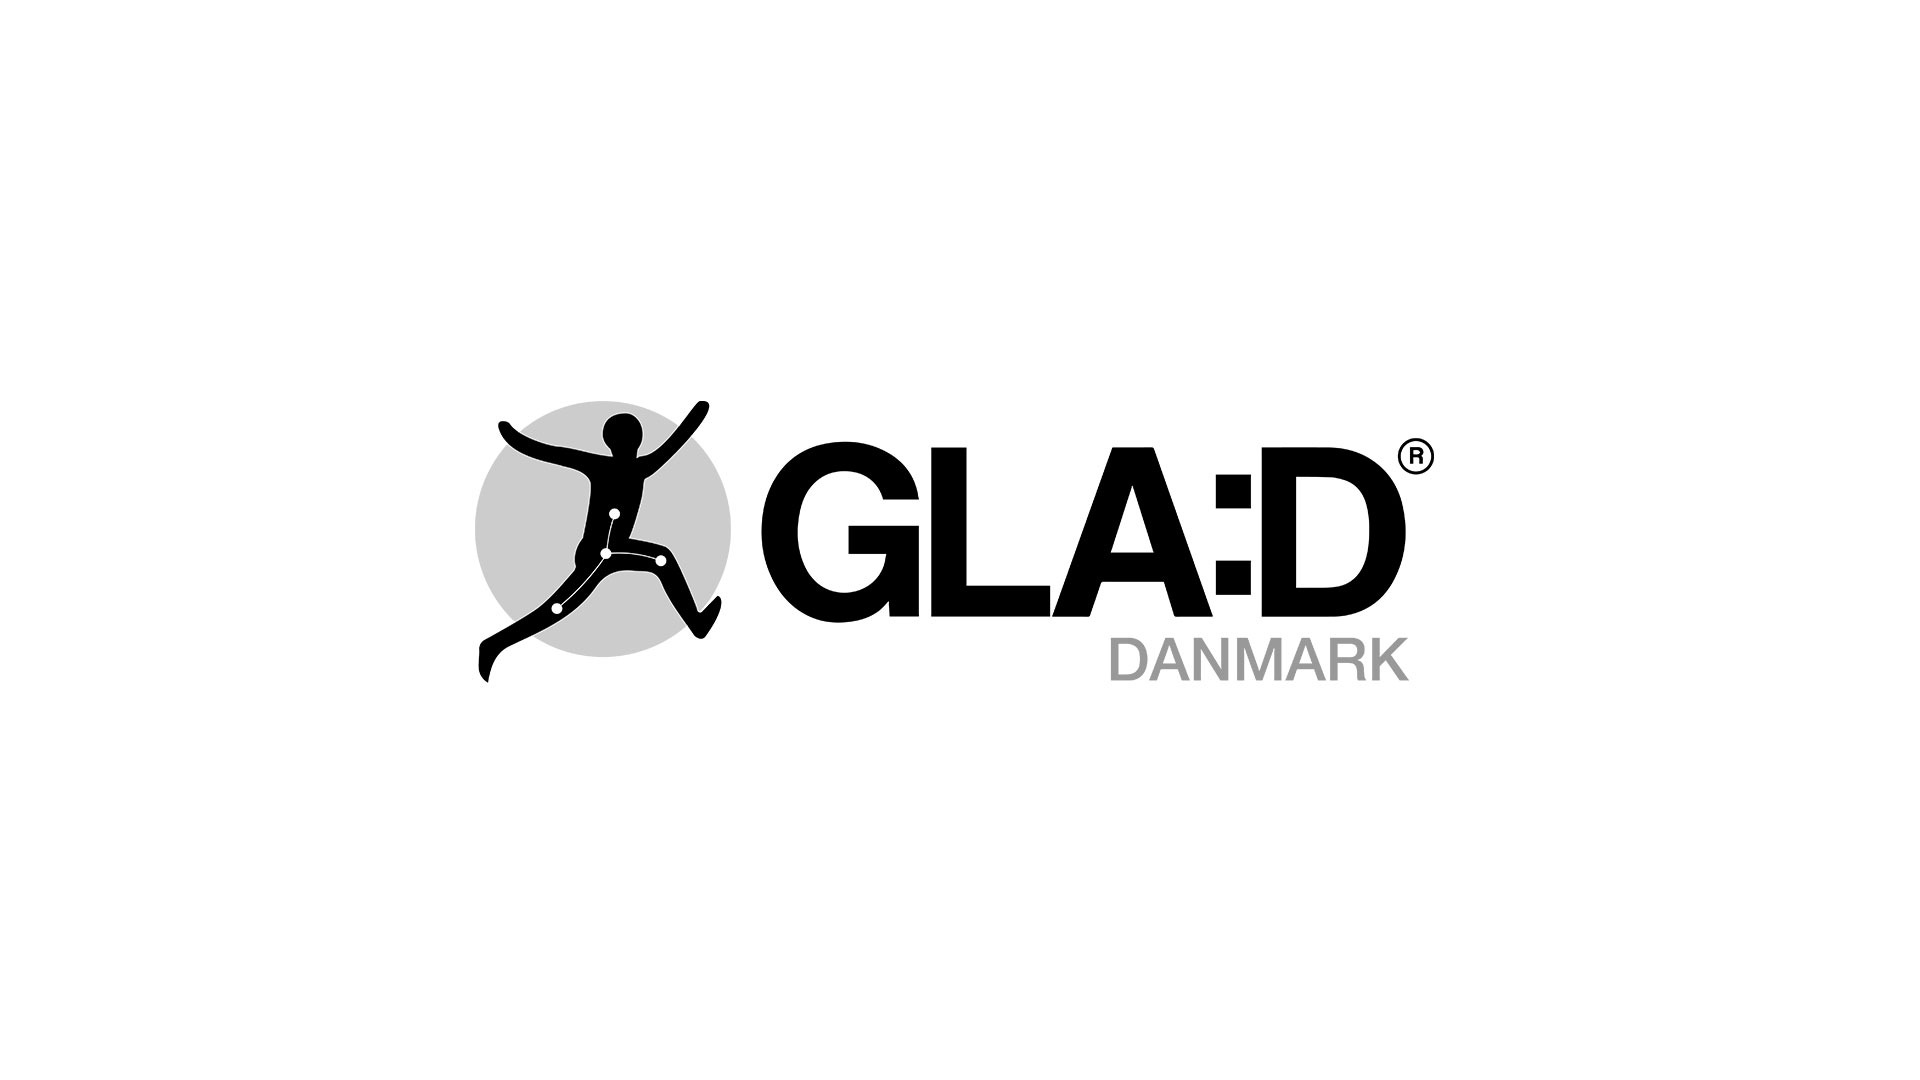 GLAD® – Syddansk universitet